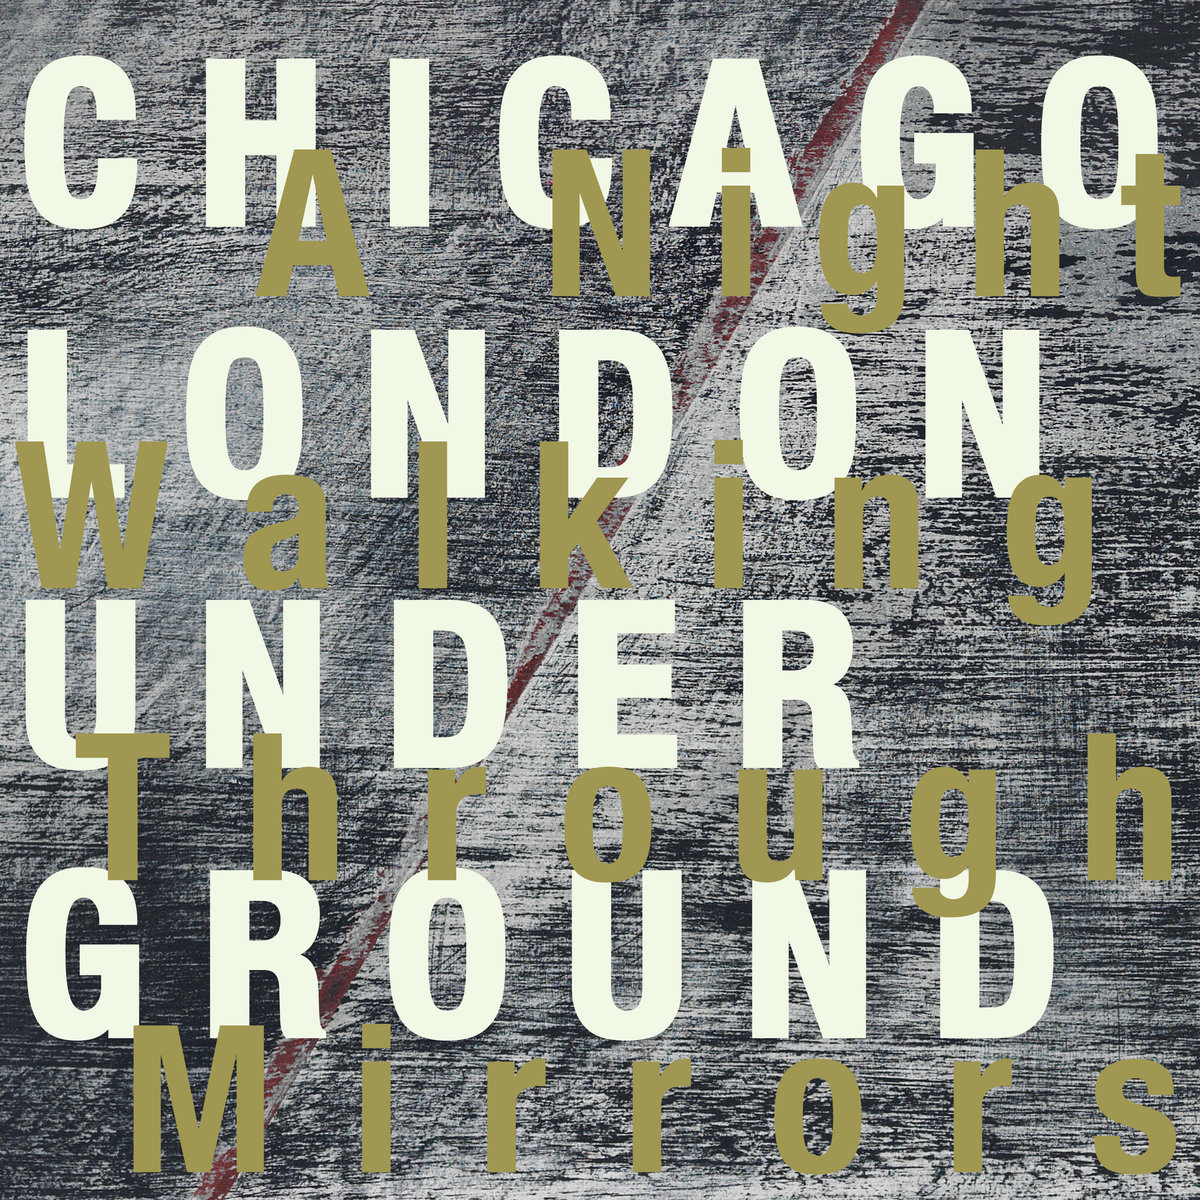 http://downbeat.com/images/reviews/chicago%3Alondon_underground_a_night.jpg